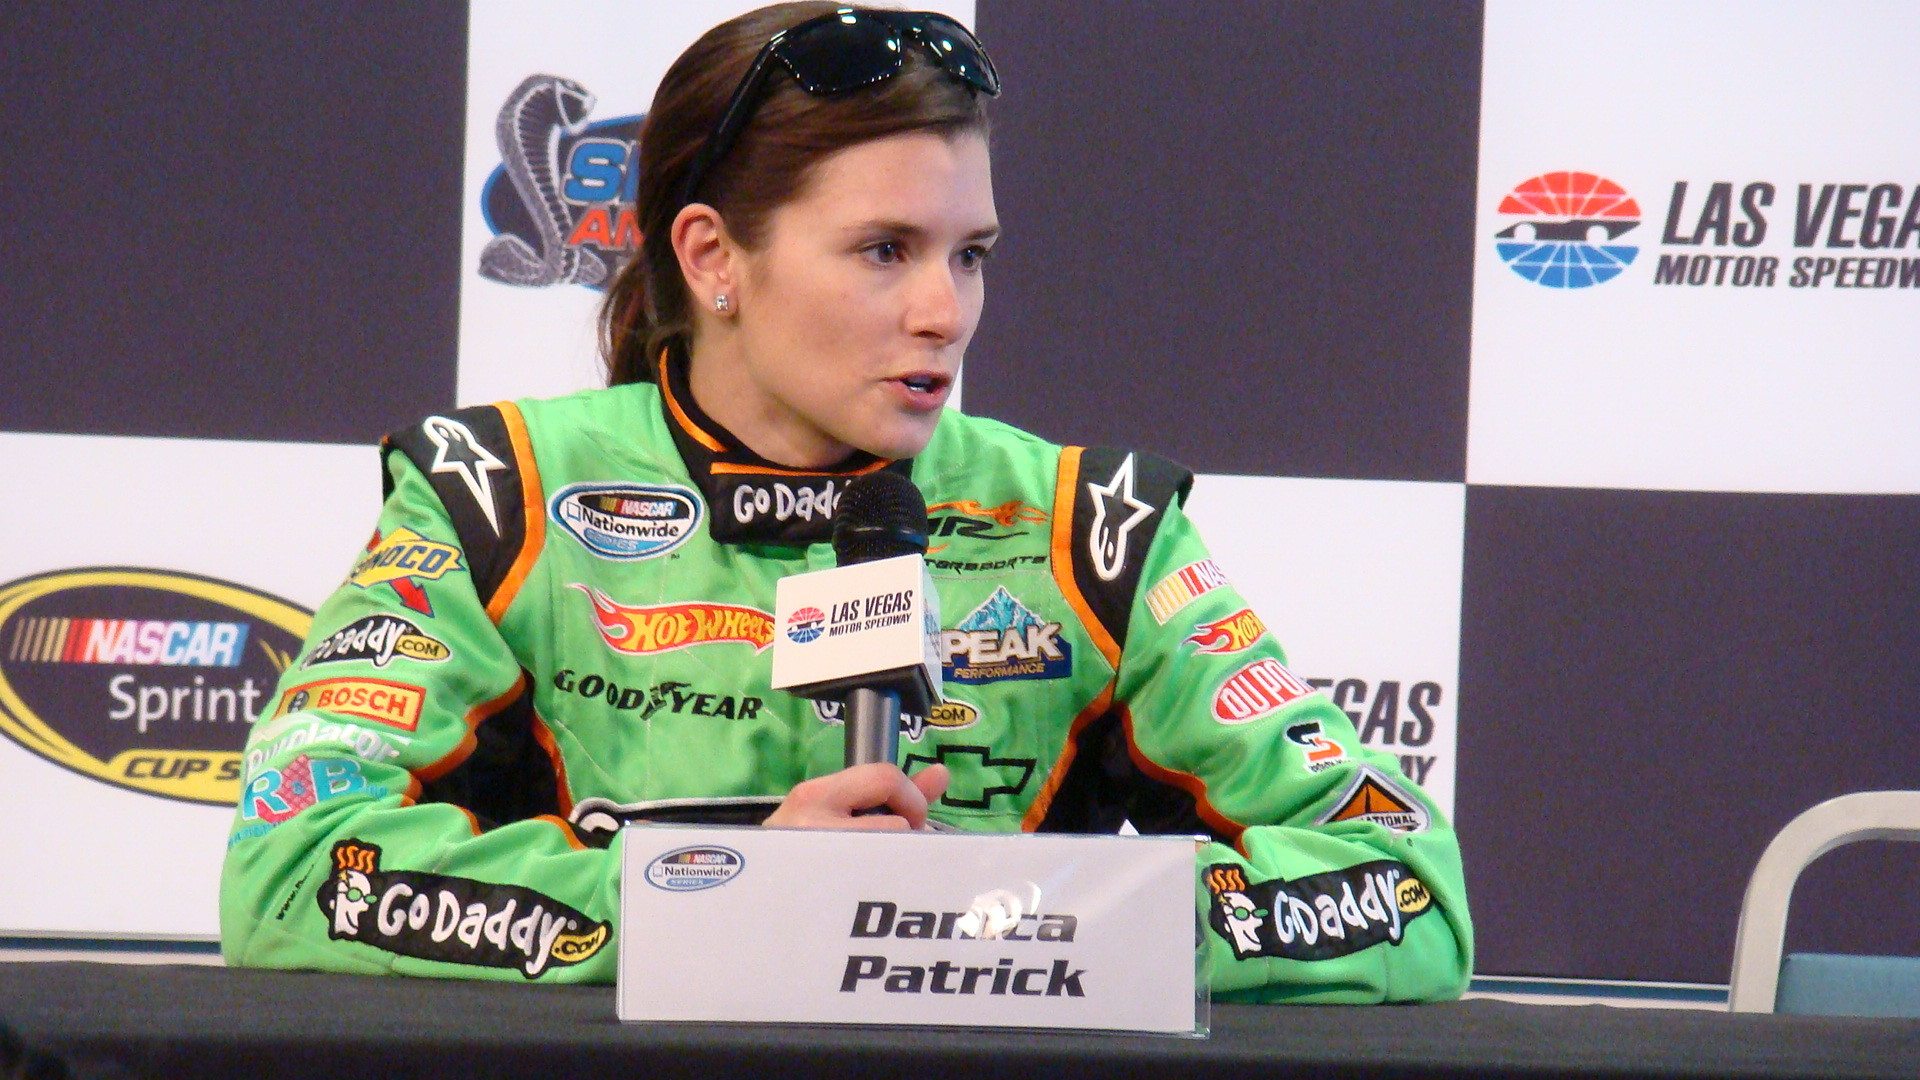 1920x1080 Patrick will be driving the GoDaddy.com Chevrolet from JR Motorsports